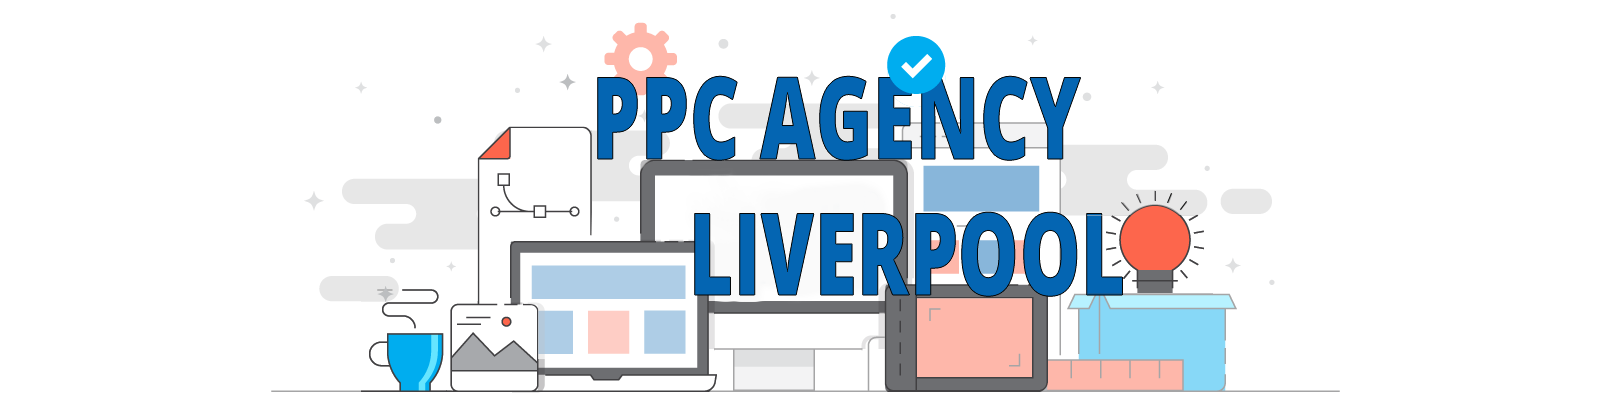 seek social ppc agency liverpool header with transparent background